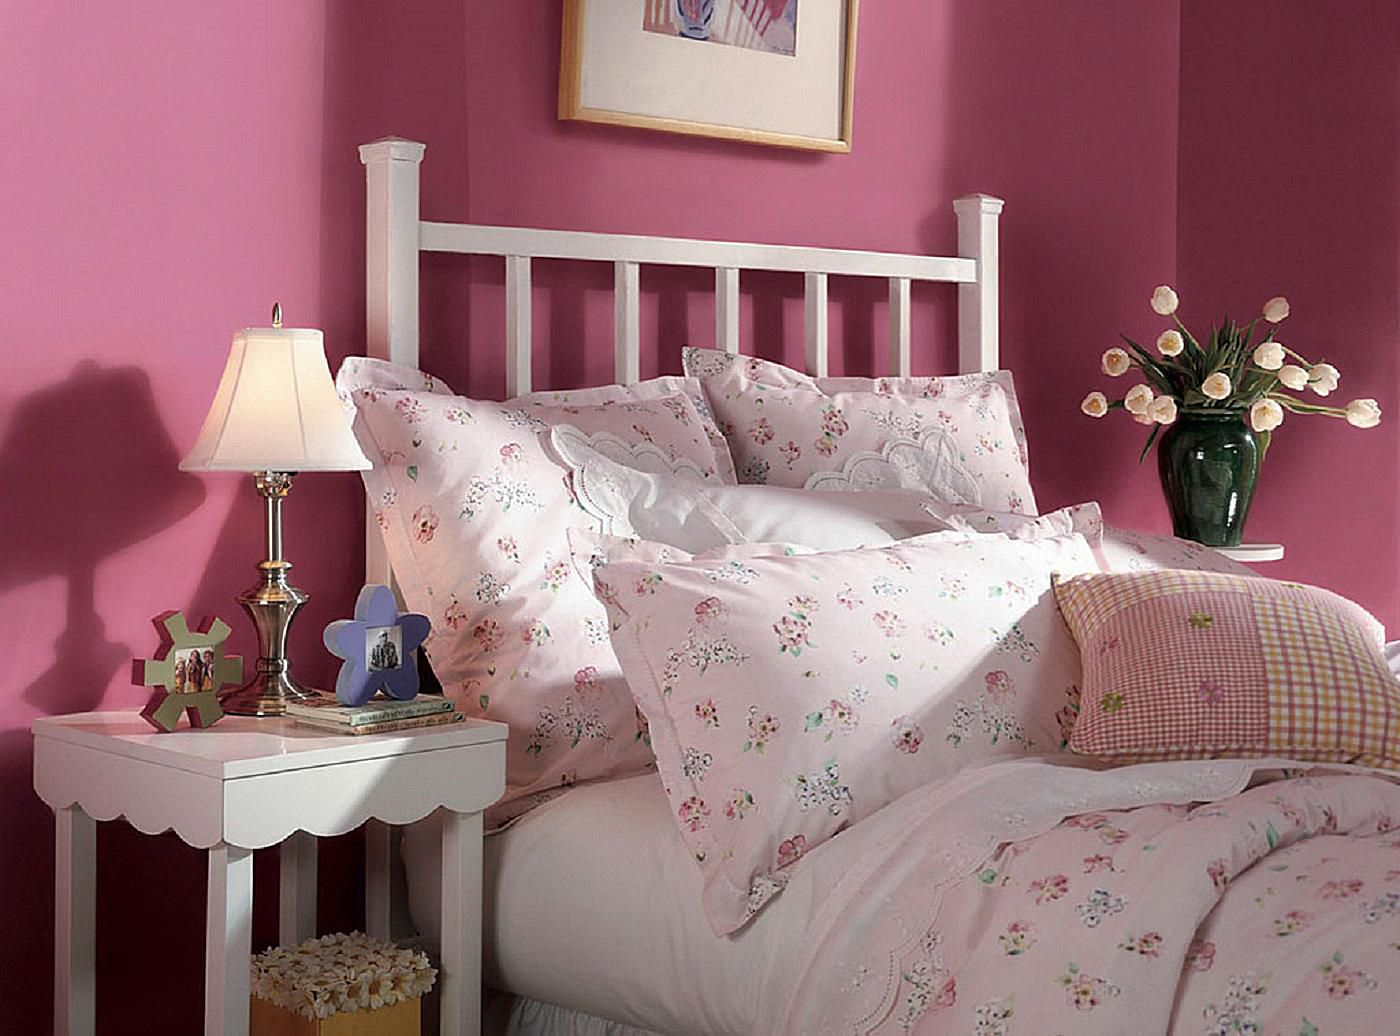 10 great pink and purple paint colors for the bedroom 20780 | dutch boy wild strawberry 58a6c6193df78c345b3a102e